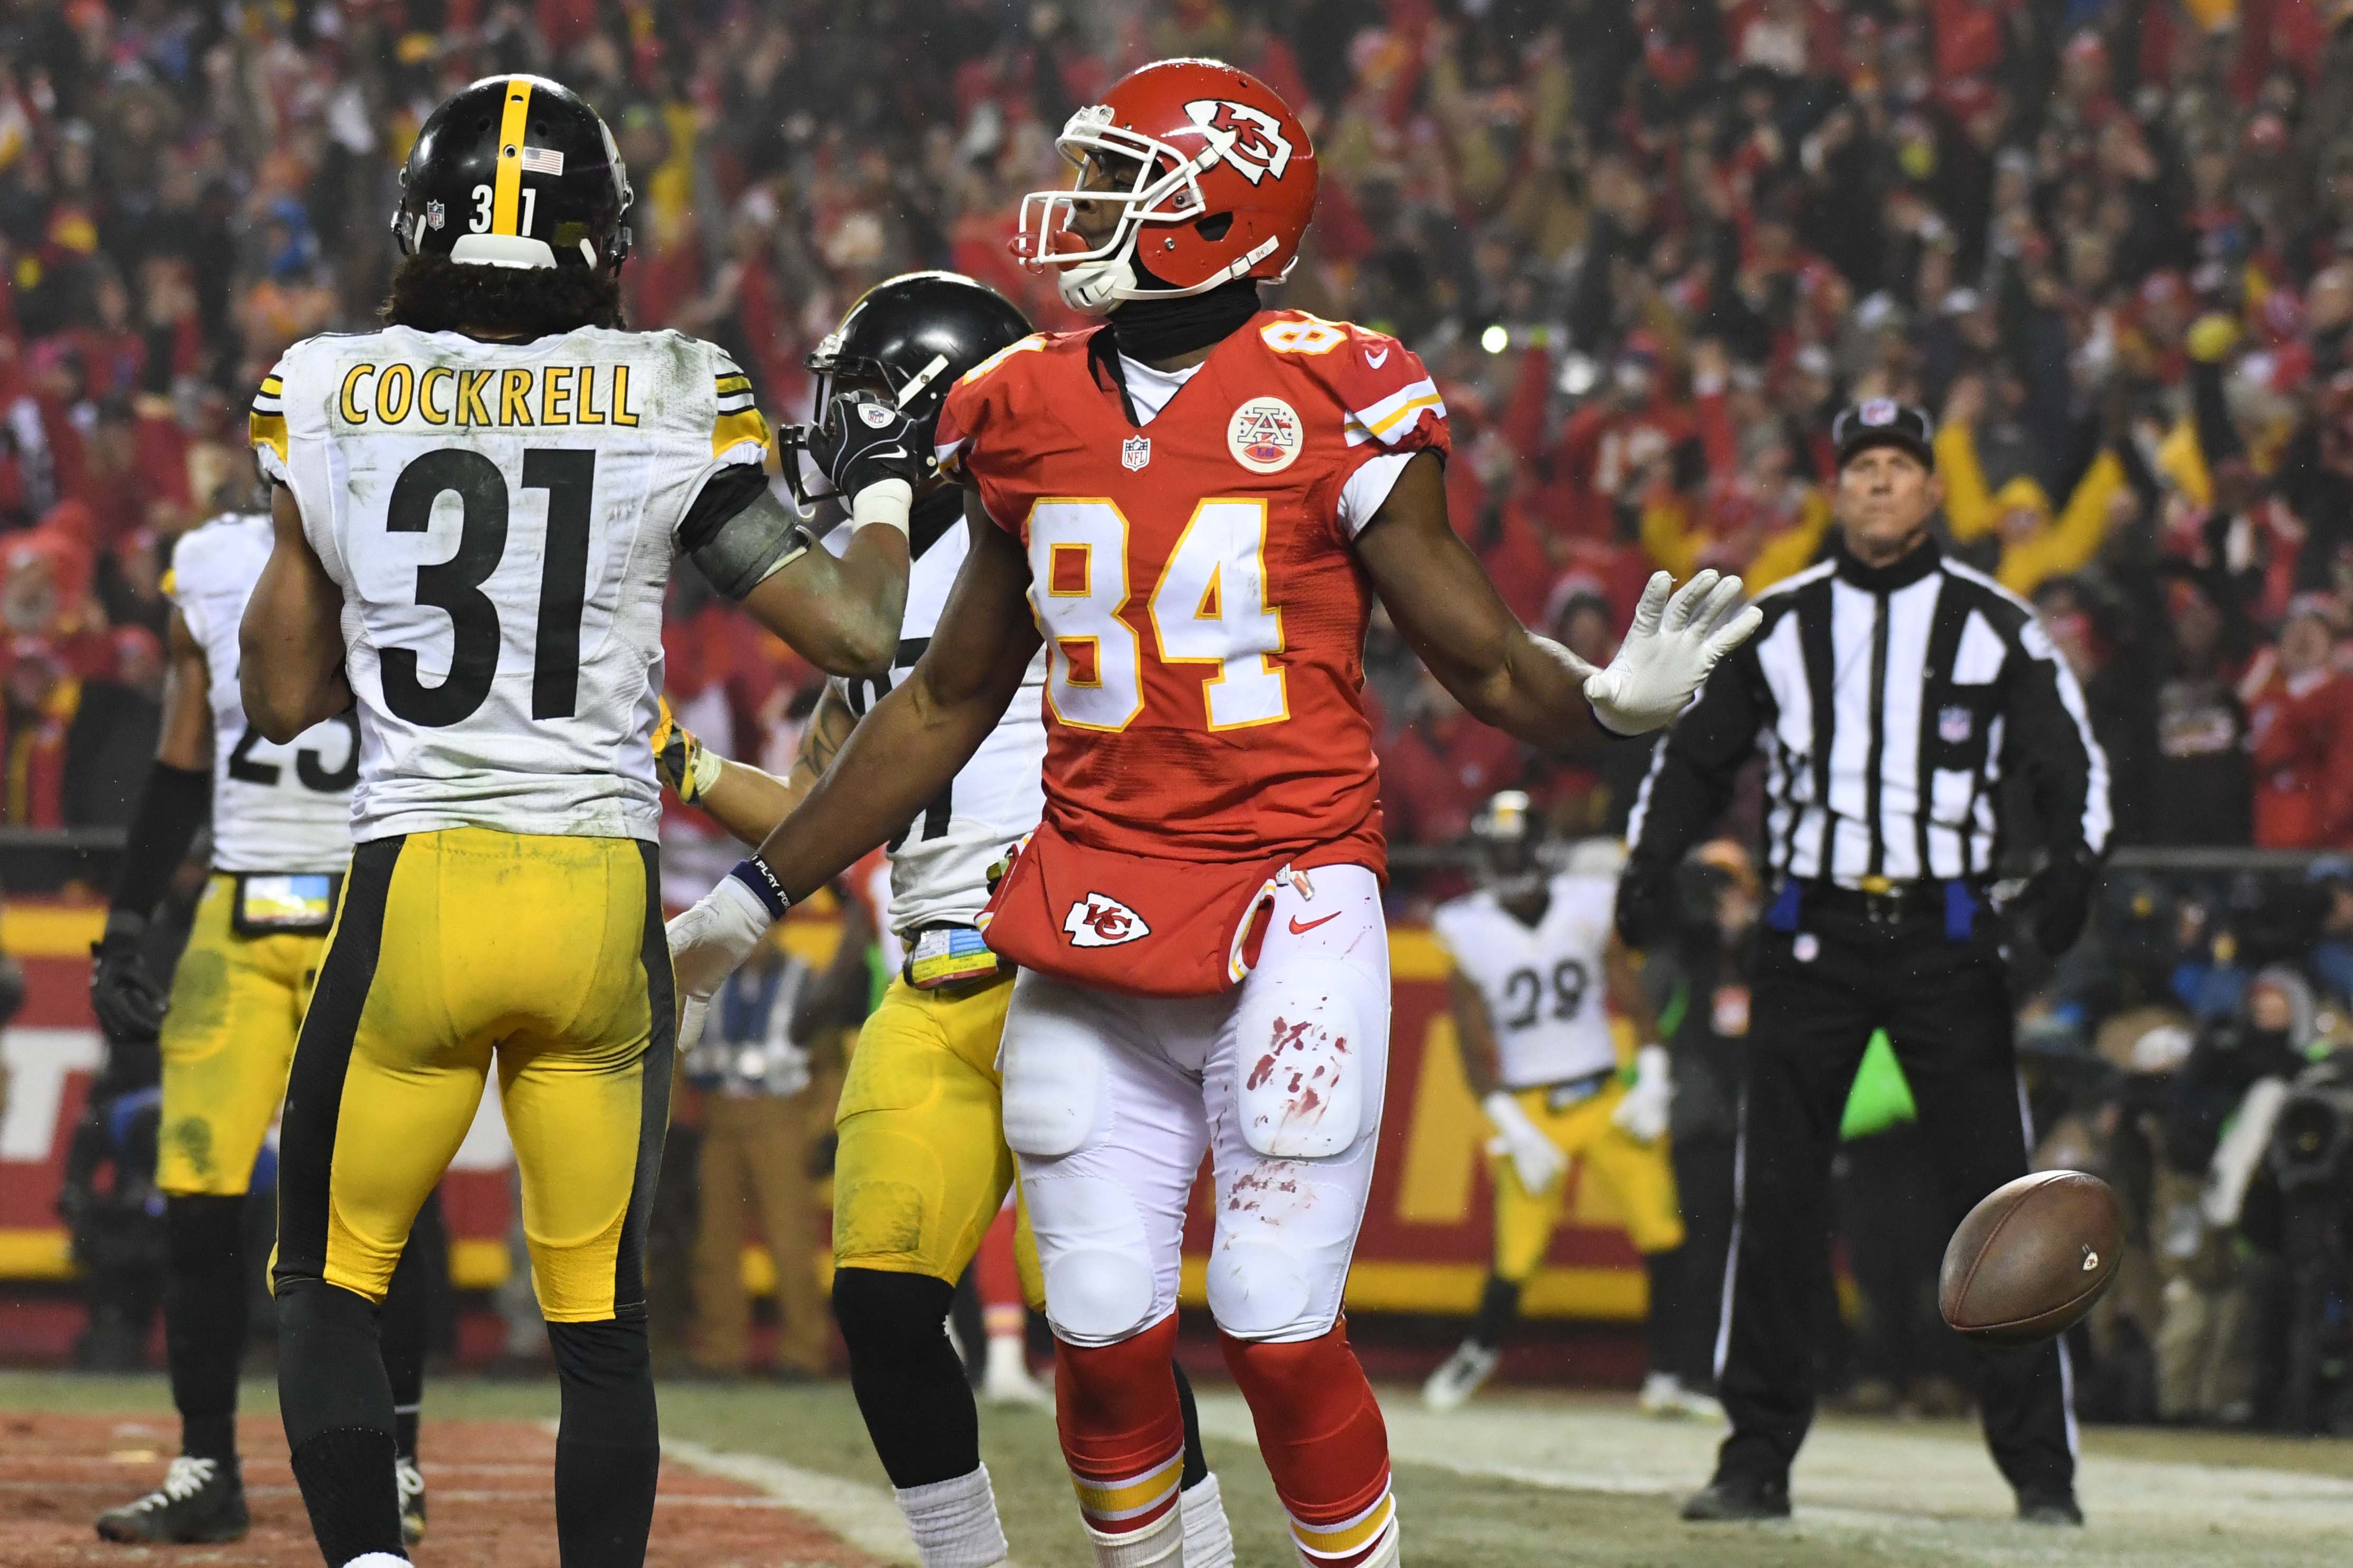 9813212-nfl-afc-divisional-pittsburgh-steelers-at-kansas-city-chiefs